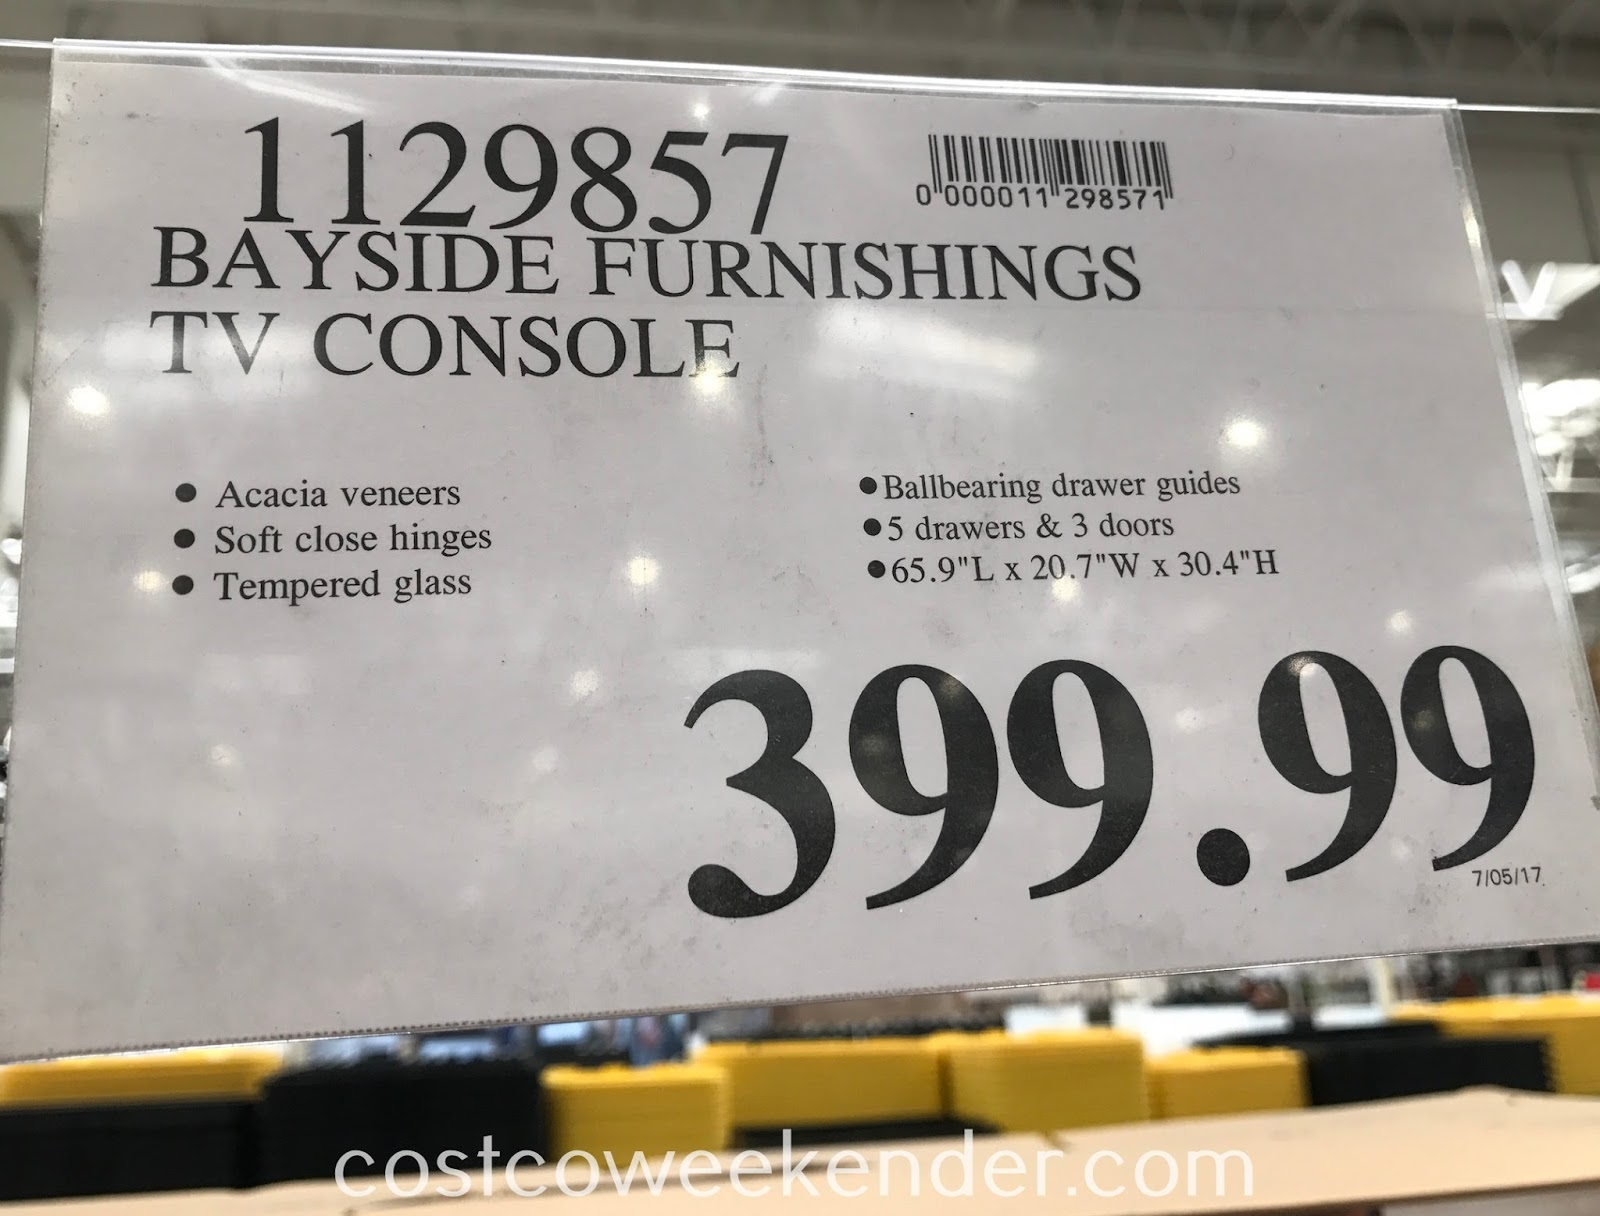 Deal for the Bayside Furnishings TV Console at Costco